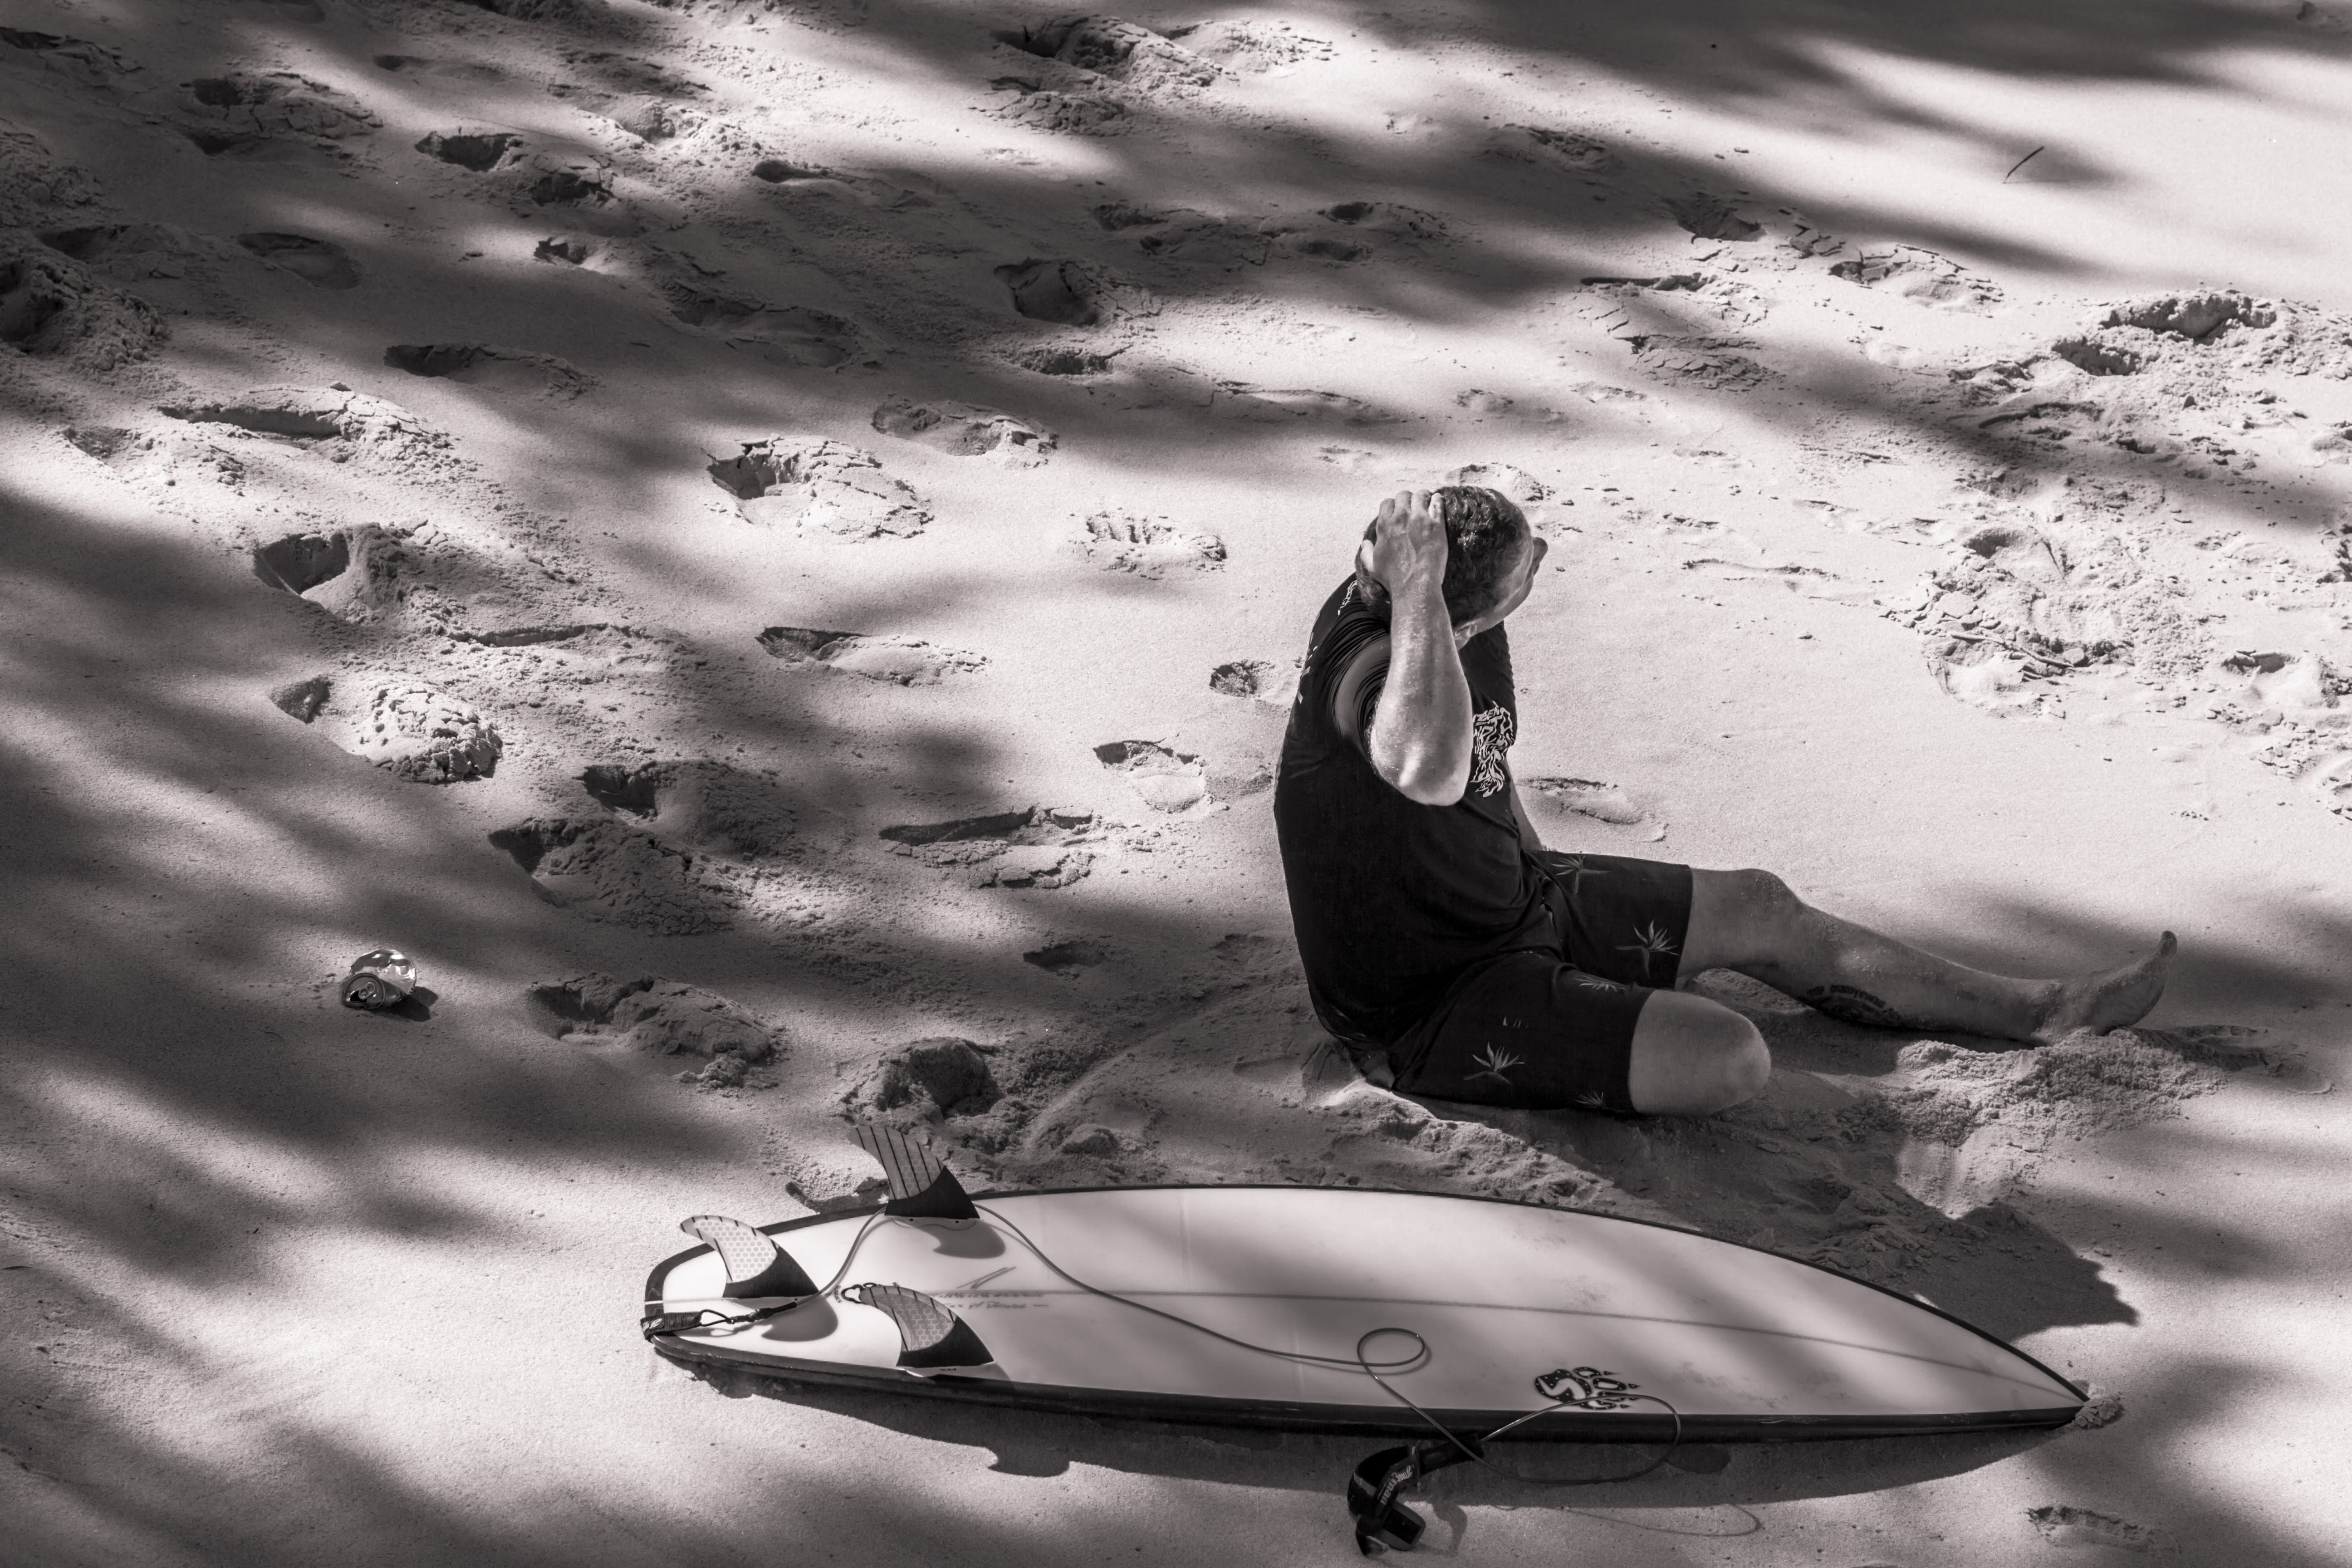 Grayscale Photo of Man Sits Beside Surfboard on Sand